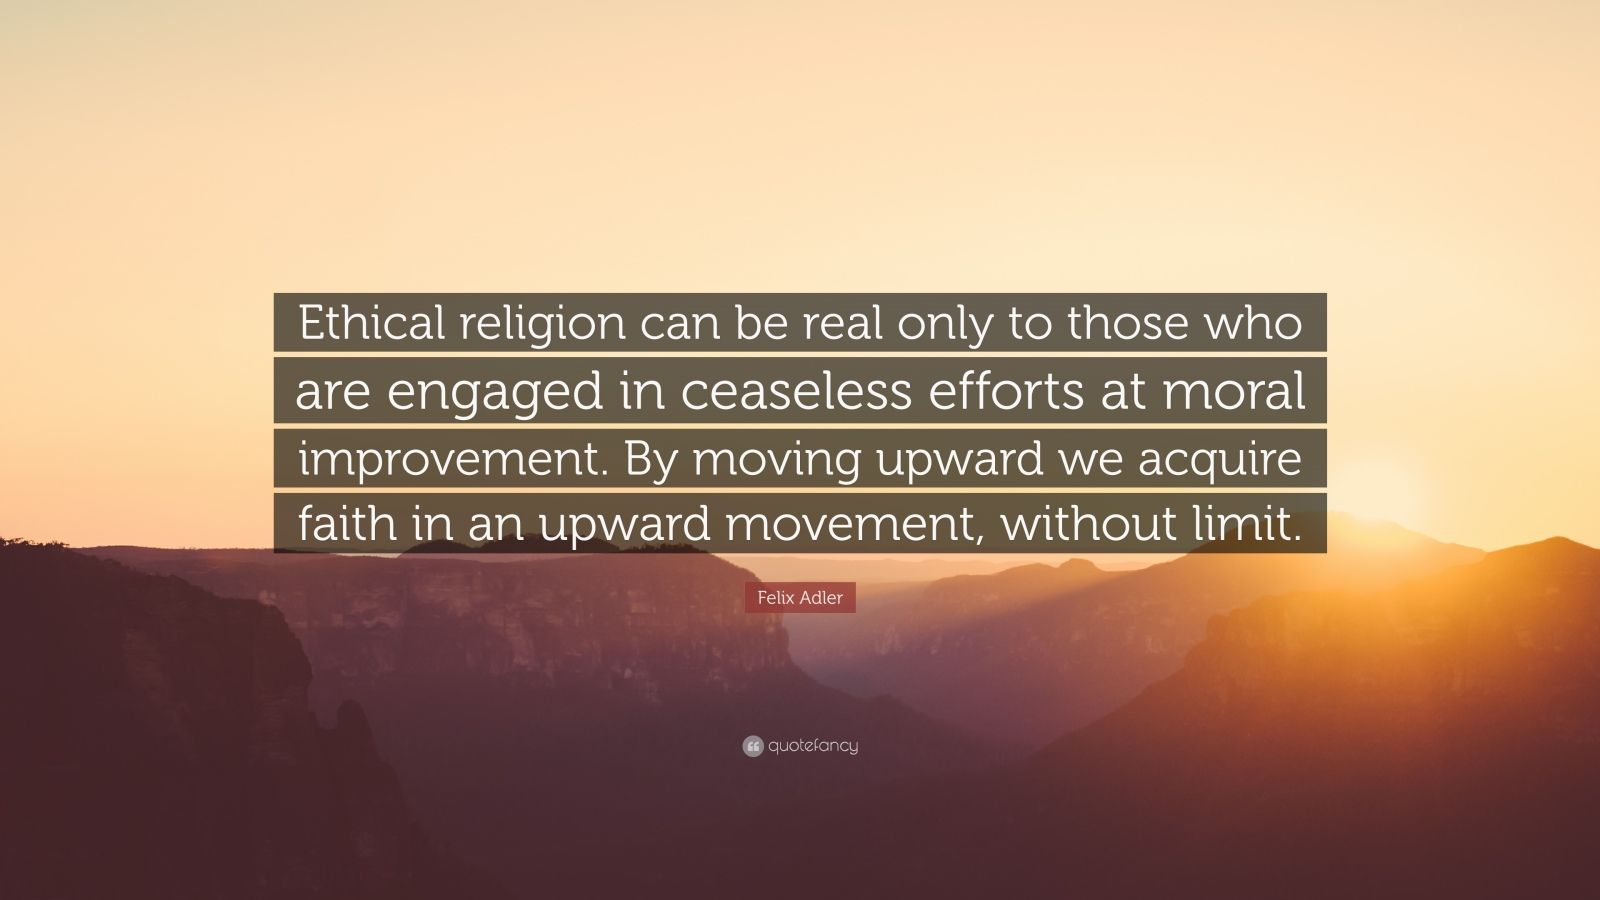 """Felix Adler Quote: """"Ethical religion can be real only to those who are engaged in ceaseless efforts at moral improvement. By moving upward we acquire faith in an upward movement, without limit."""""""